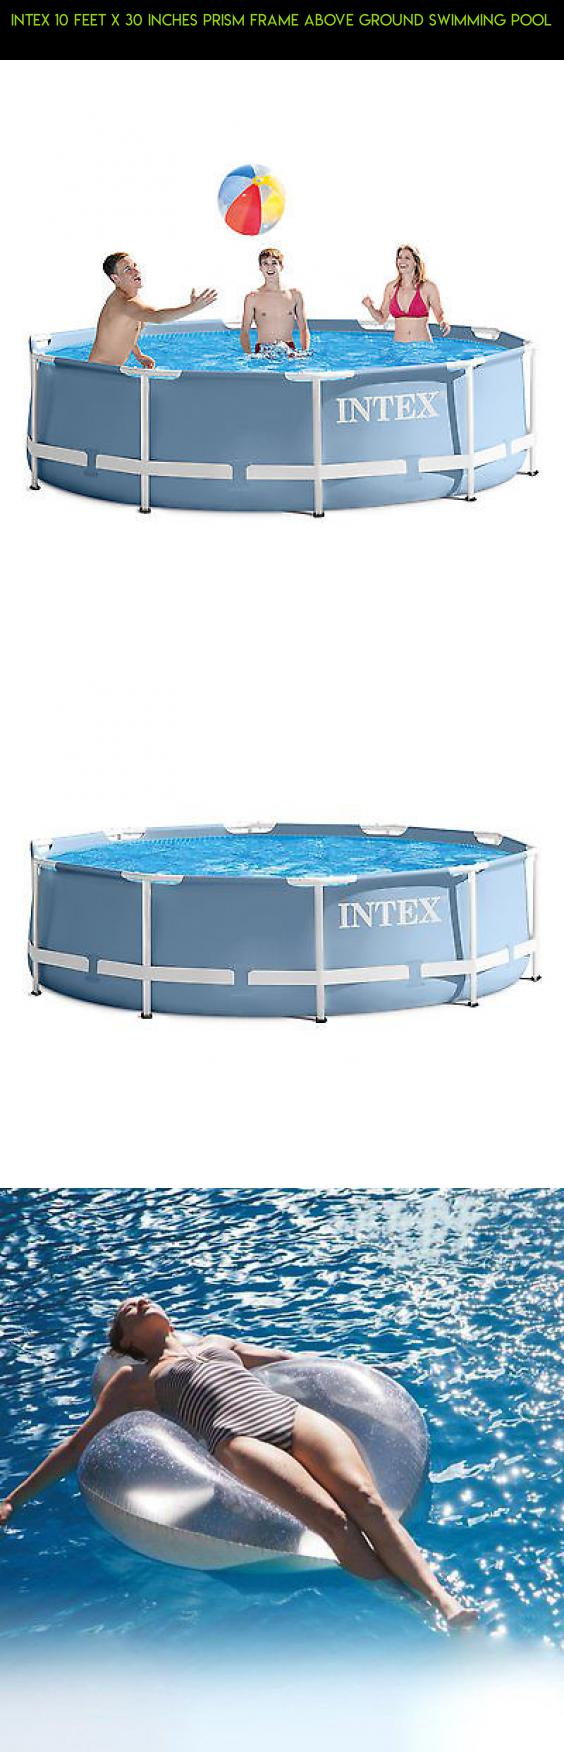 Intex 10 Feet x 30 Inches Prism Frame Above Ground Swimming Pool ...